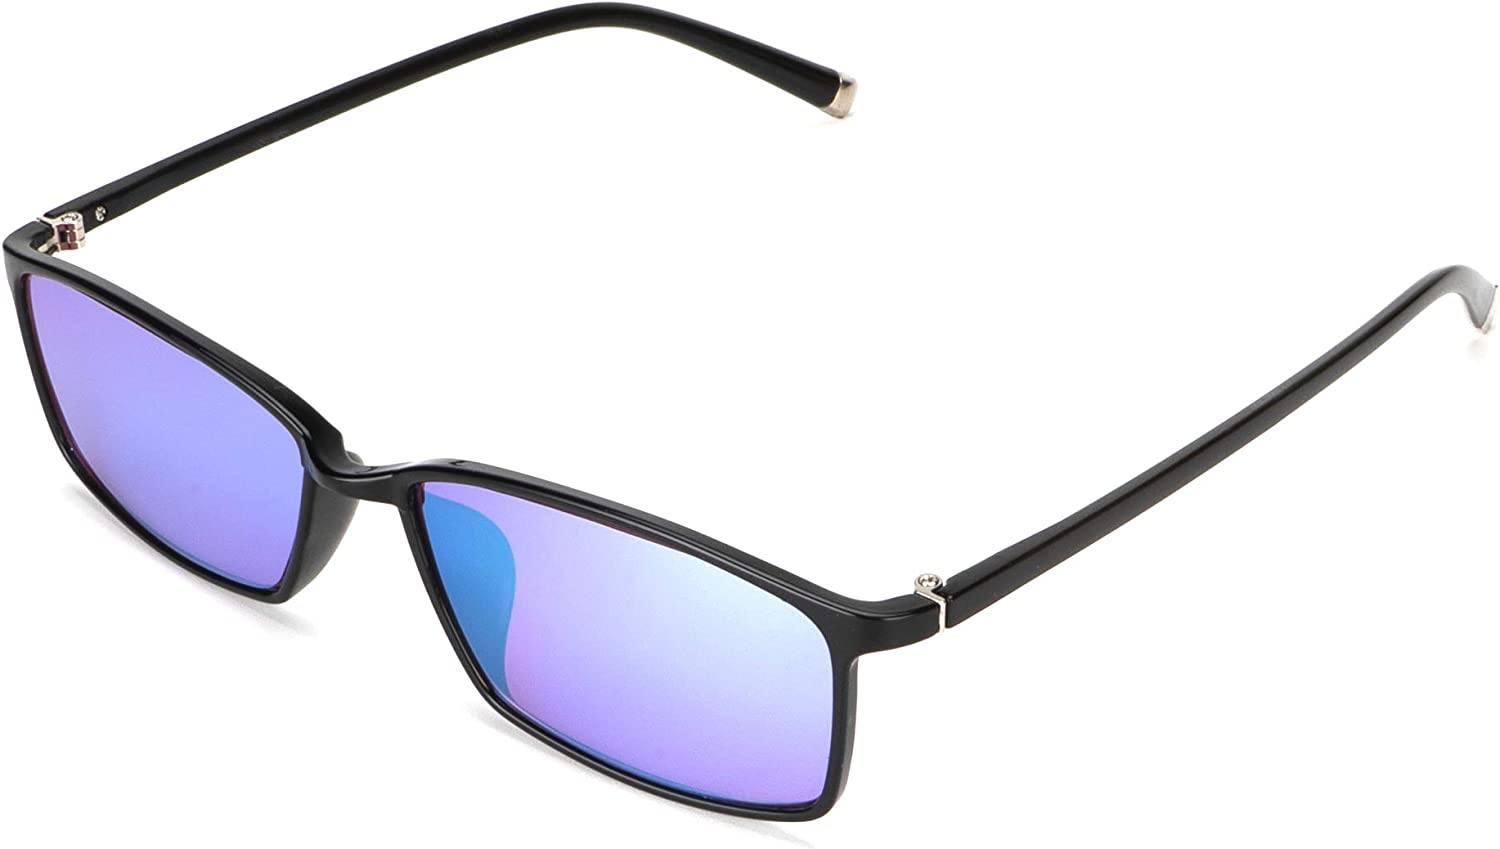 BLCC Color Blindness Correction Glasses Color Changing Glasses Driving Color Recognition Red//Green Glasses Anti-Blue Light Used to Improve Indoor and Outdoor Color Vision